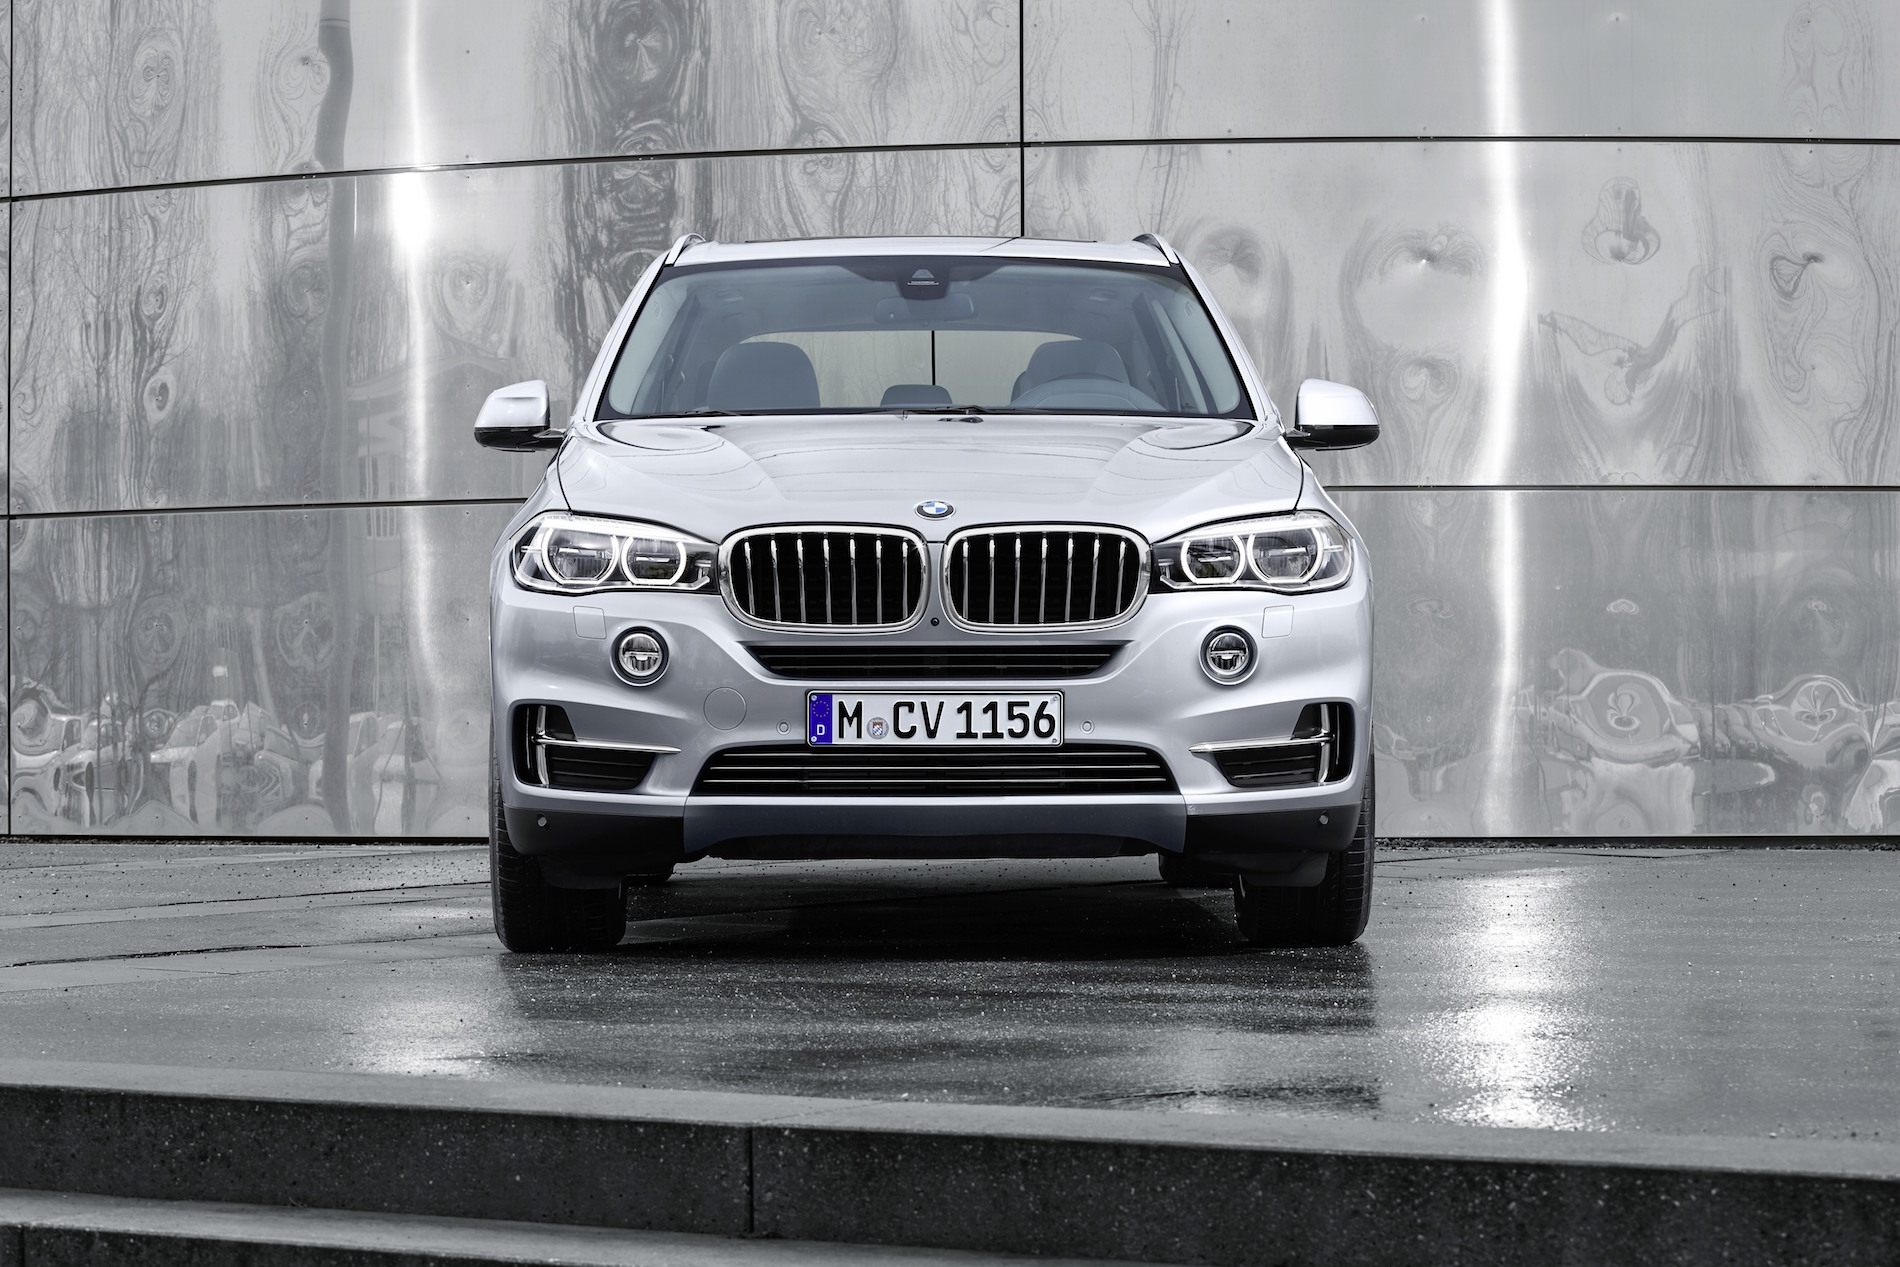 Introducing The Bmw X5 Xdrive40e Plug In Hybrid Updated W